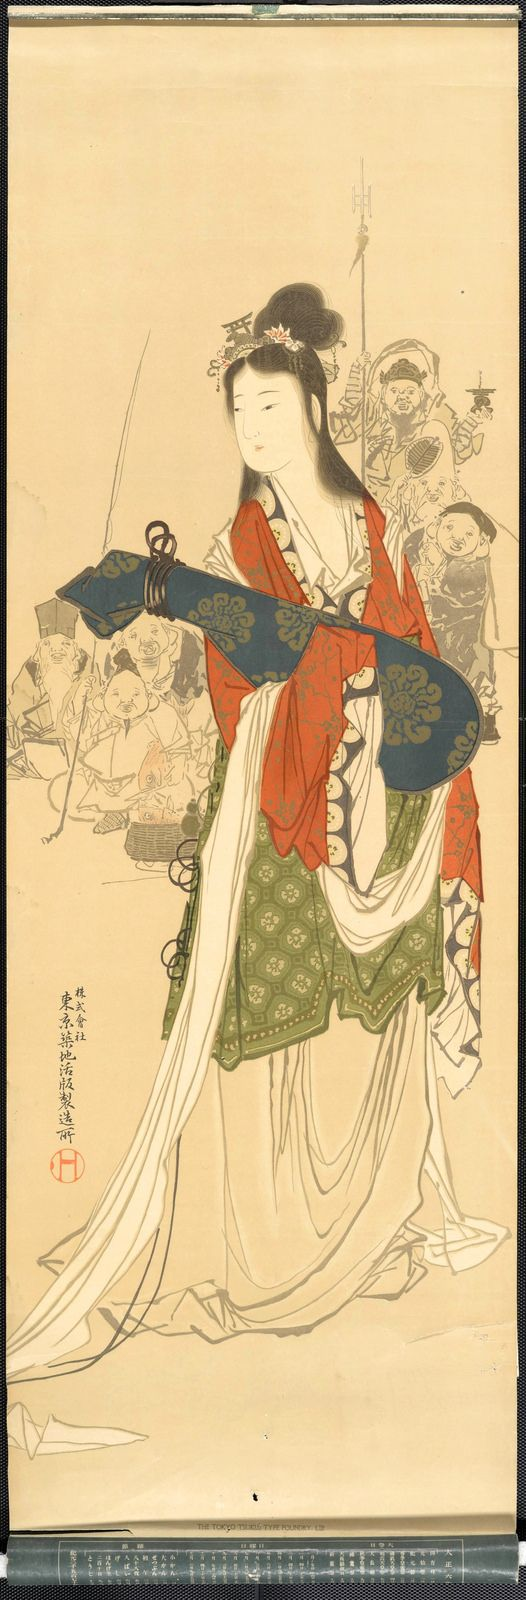 ukioy-e print in colour of woman in traditional Japanese costume walking, with small crowd behind watching her